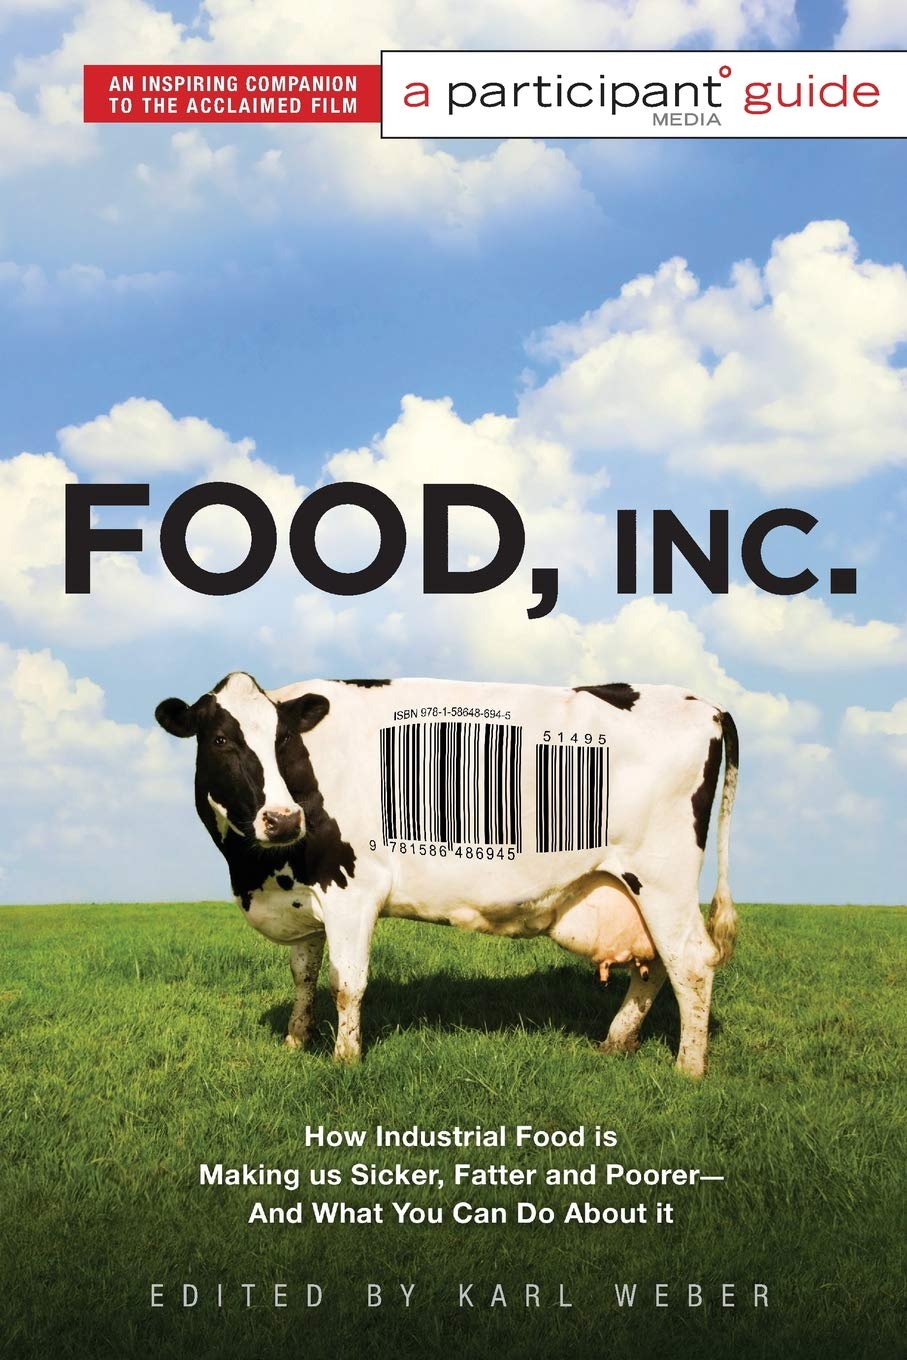 "food Inc.: a participant guide: how industrial food is making us sicker, fatter, and poorer - and what you can do about it - Food, Inc. is guaranteed to shake up our perceptions of what we eat. This powerful documentary deconstructing the corporate food industry in America was hailed by Entertainment Weekly as ""more than a terrific movie—it's an important movie."" Aided by expert commentators such as Michael Pollan and Eric Schlosser, the film poses questions such as: Where has my food come from, and who has processed it? What are the giant agribusinesses and what stake do they have in maintaining the status quo of food production and consumption? How can I feed my family healthy foods affordably.Expanding on the film's themes, the book Food, Inc. will answer those questions through a series of challenging essays by leading experts and thinkers. This book will encourage those inspired by the film to learn more about the issues, and act to change the world."